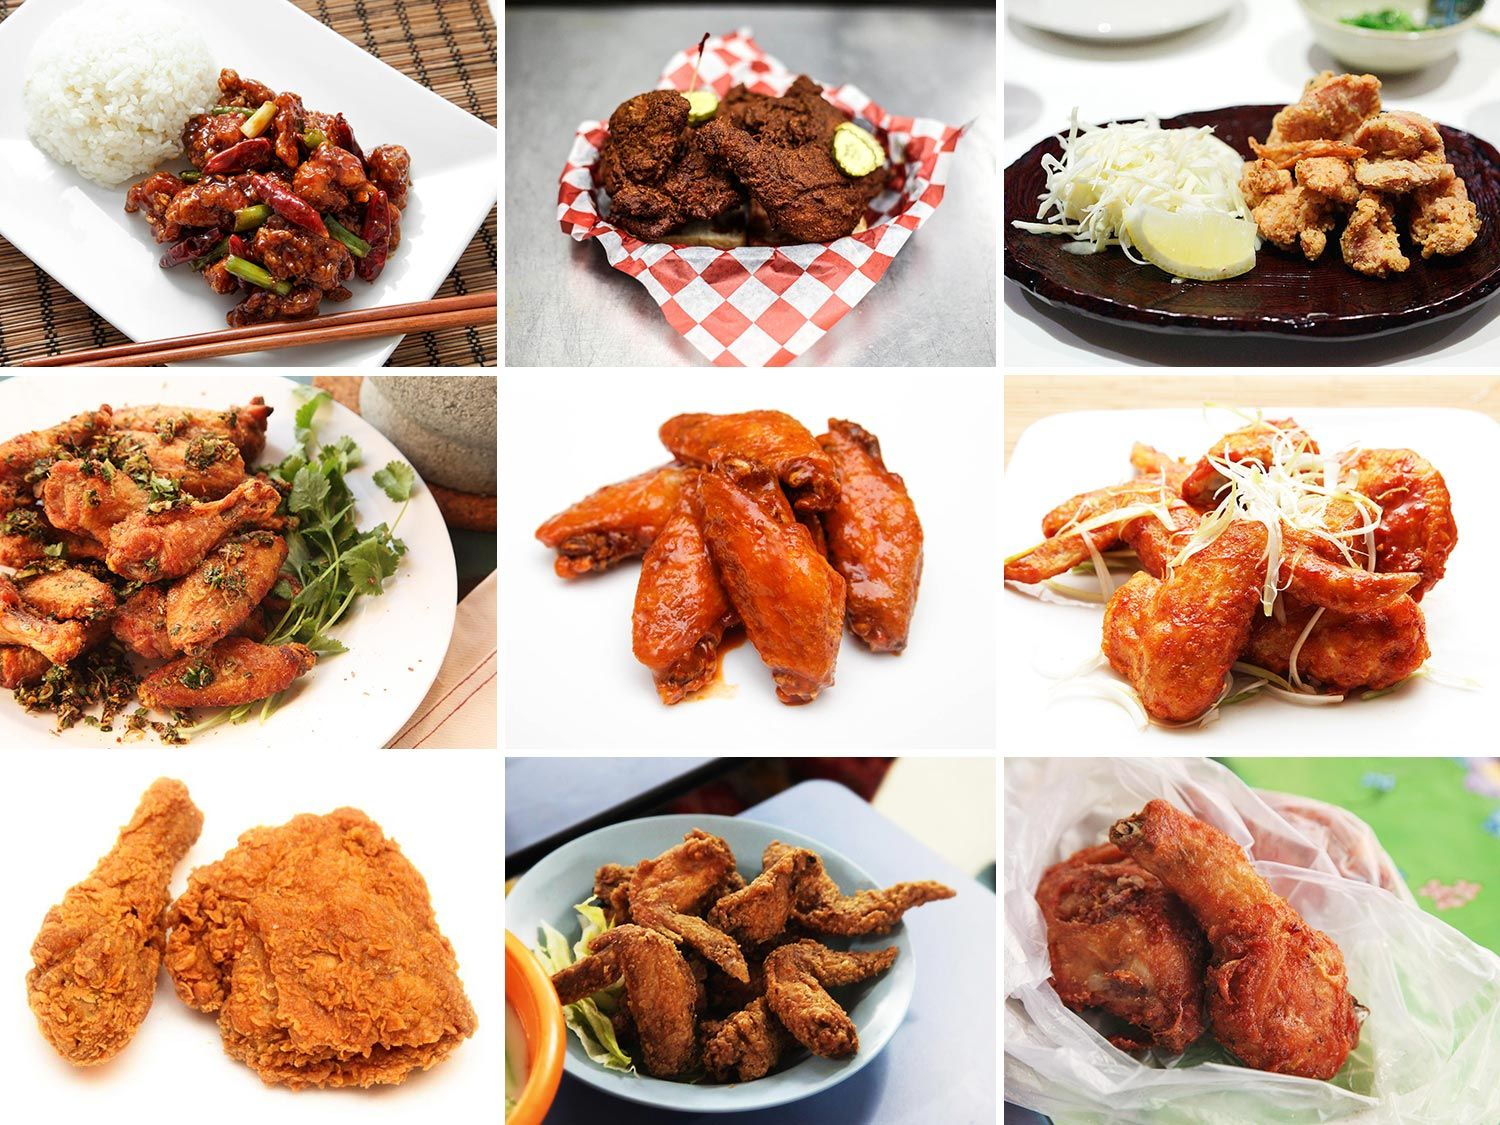 23+ The Best Fried Chicken on the Planet An Opinionated World Tour ... Fotos